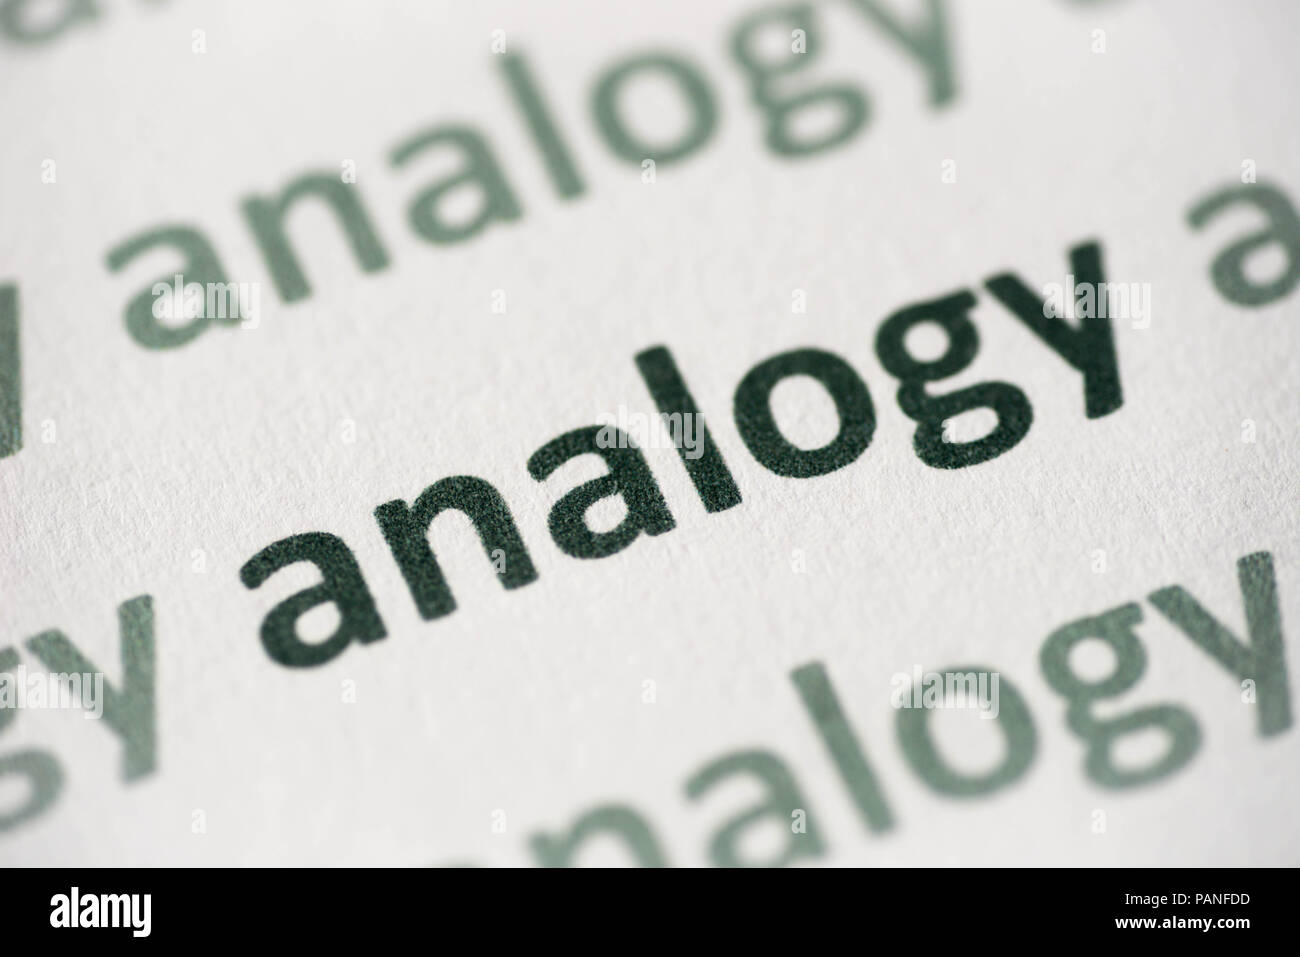 word analogy printed on white paper macro - Stock Image